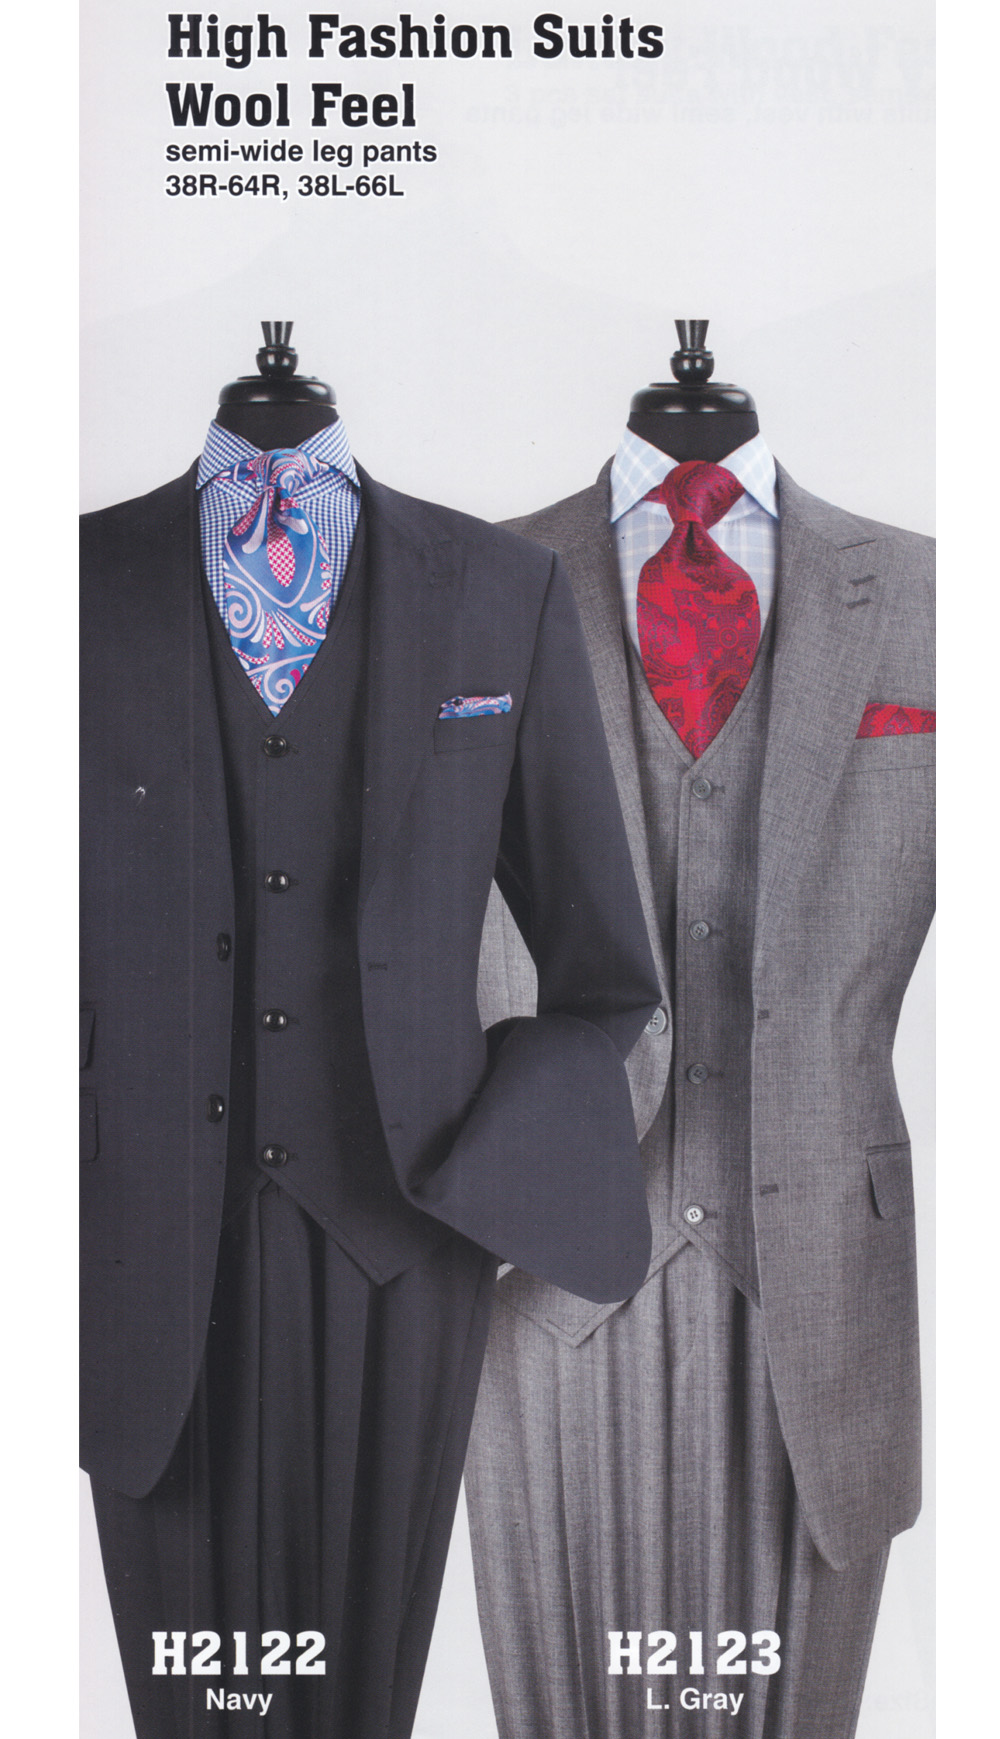 High Fashion Men Suits H2123